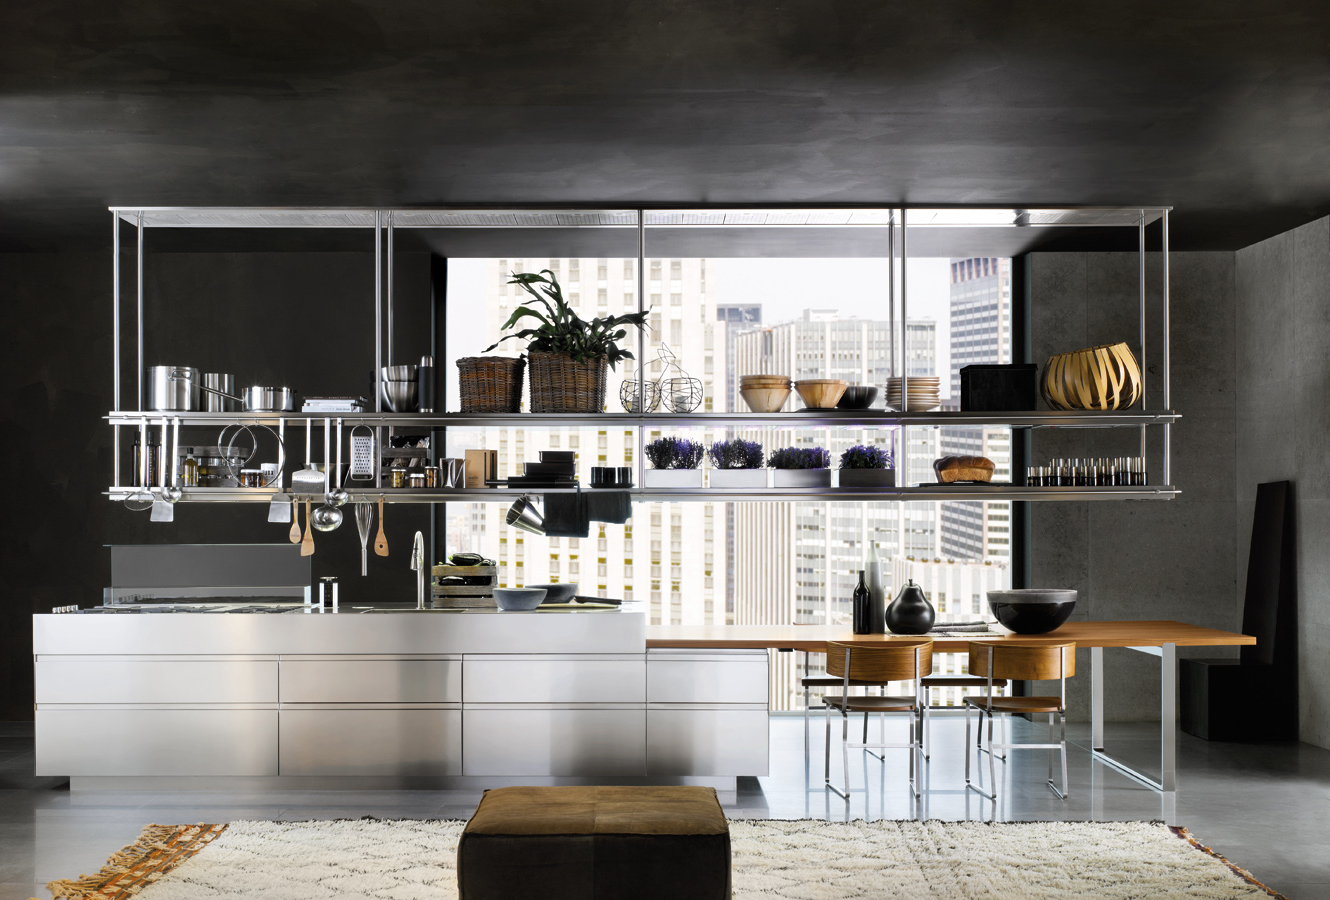 masculine cafe kitchen decor with stainless steel storage idea